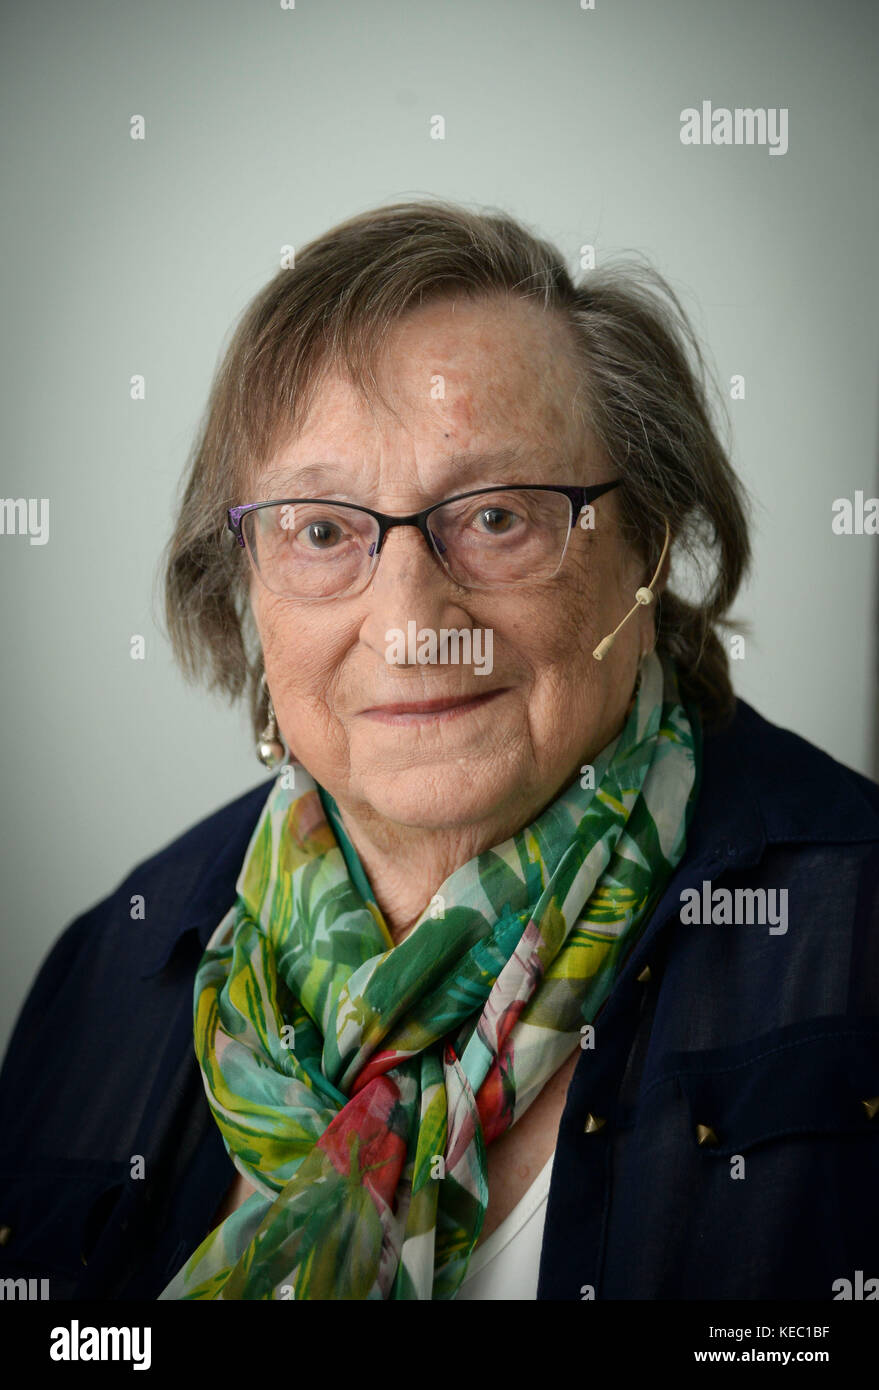 Iby Knill at The Dorchester Literary Festival, Dorset, UK, Iby Knill, Auschwitz holocaust survivor Credit: Finnbarr - Stock Image